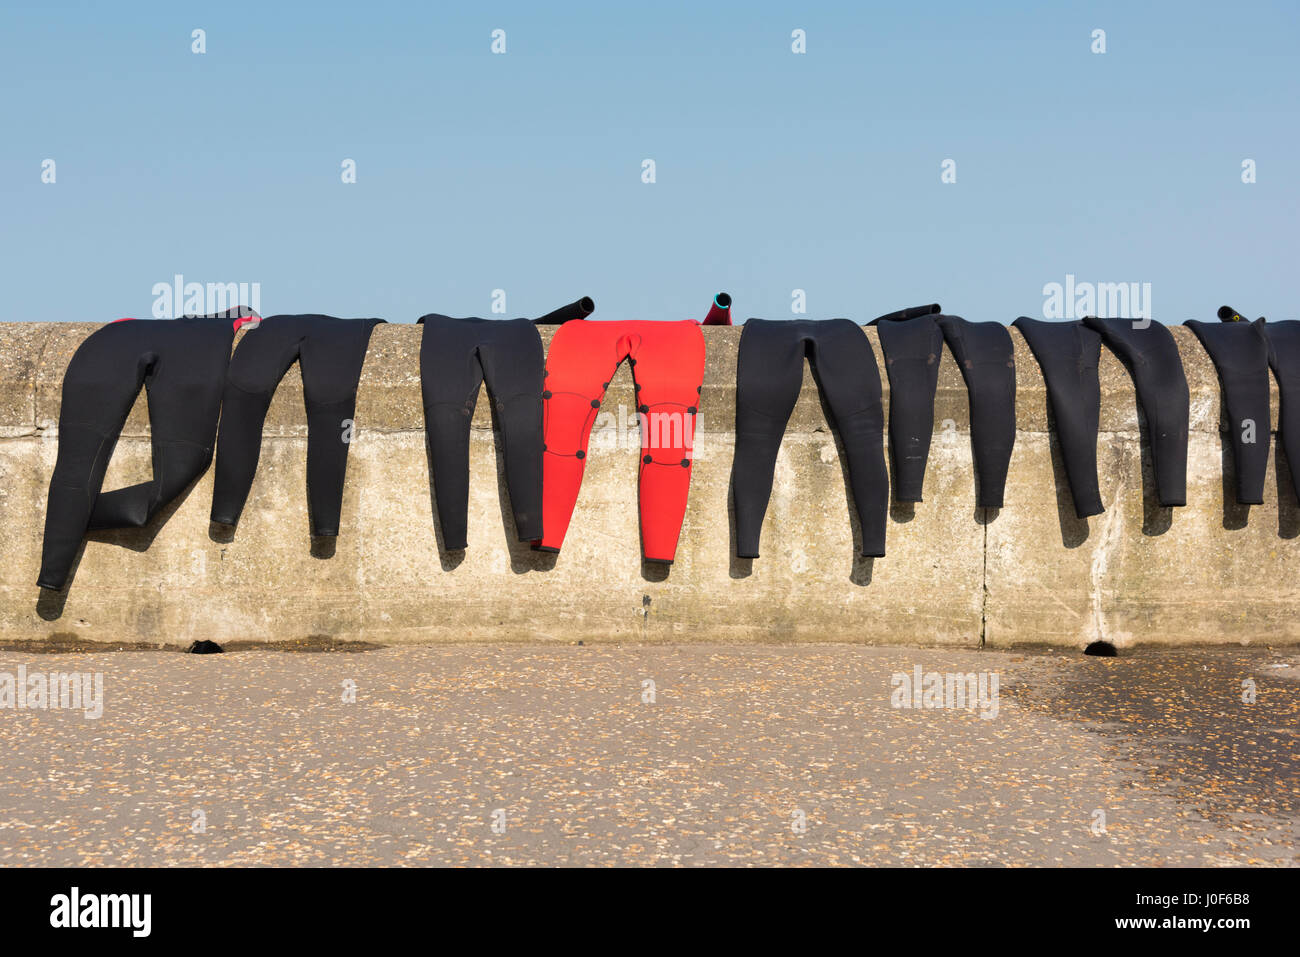 A line of black wetsuits drying on a wall with one red one. Difference. Odd one out. - Stock Image